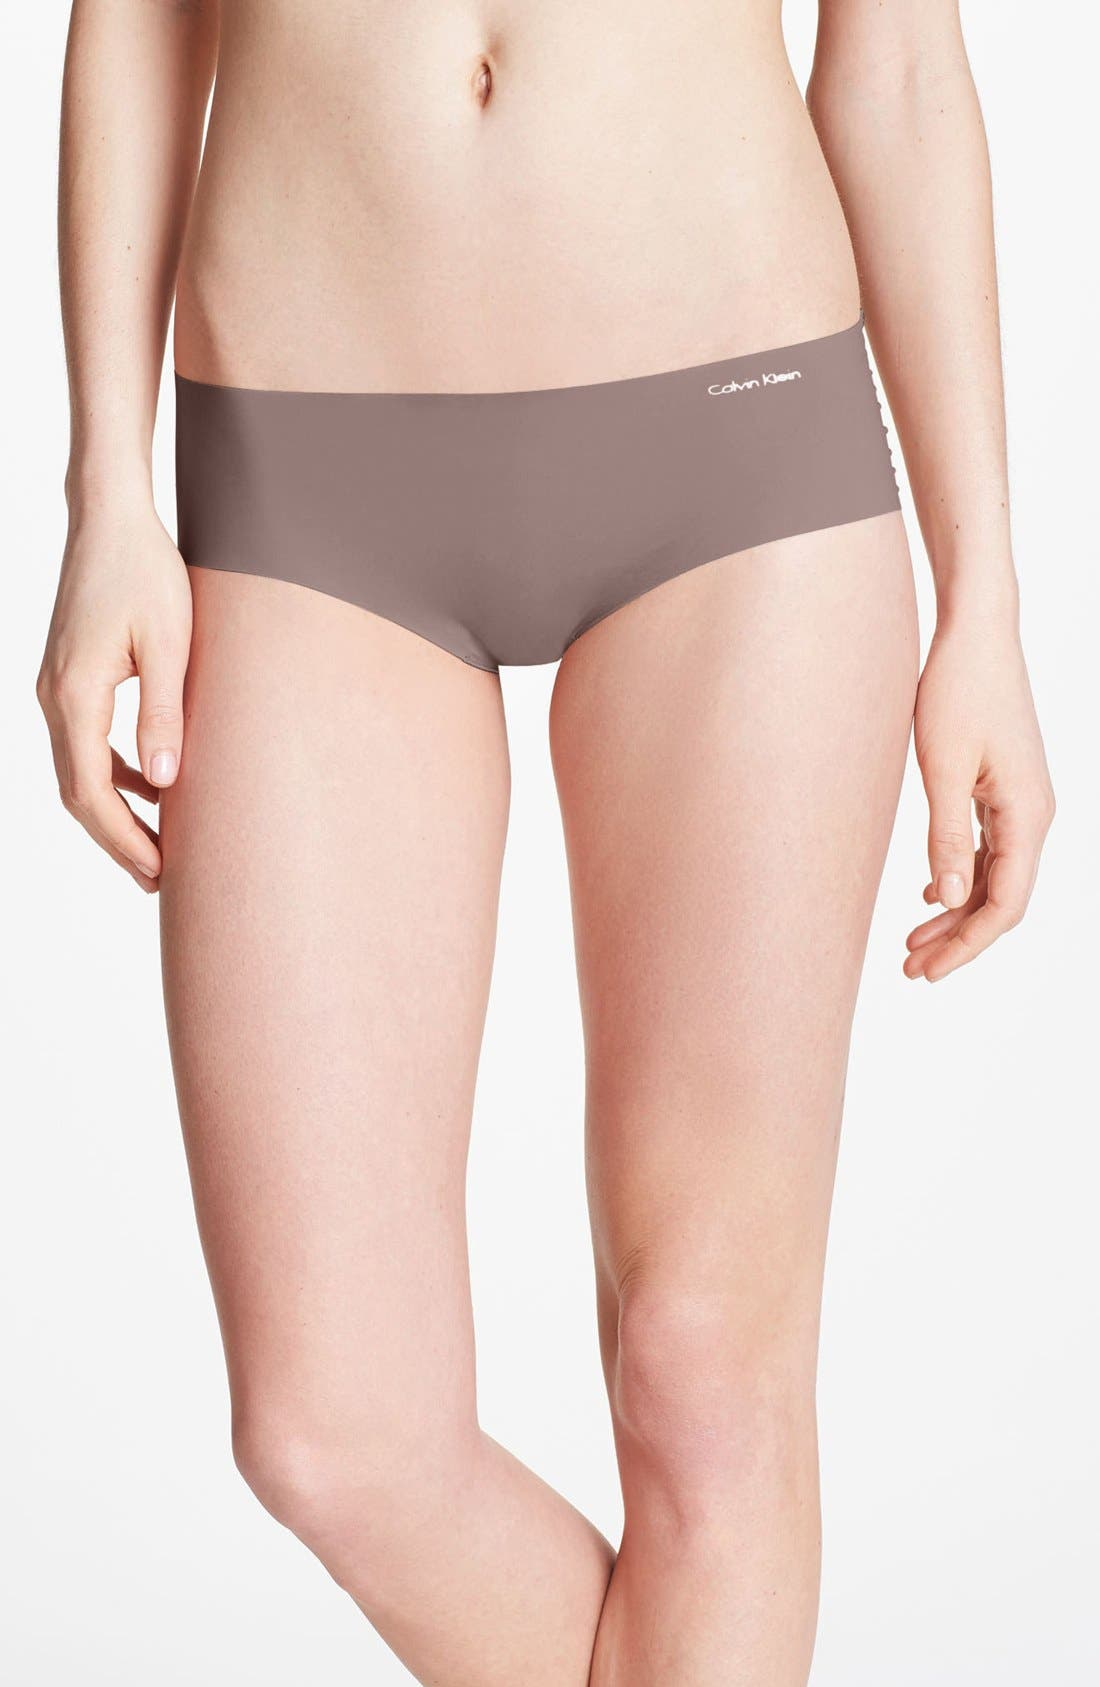 Main Image - Calvin Klein 'Invisibles' Hipster Briefs (3 for $33)